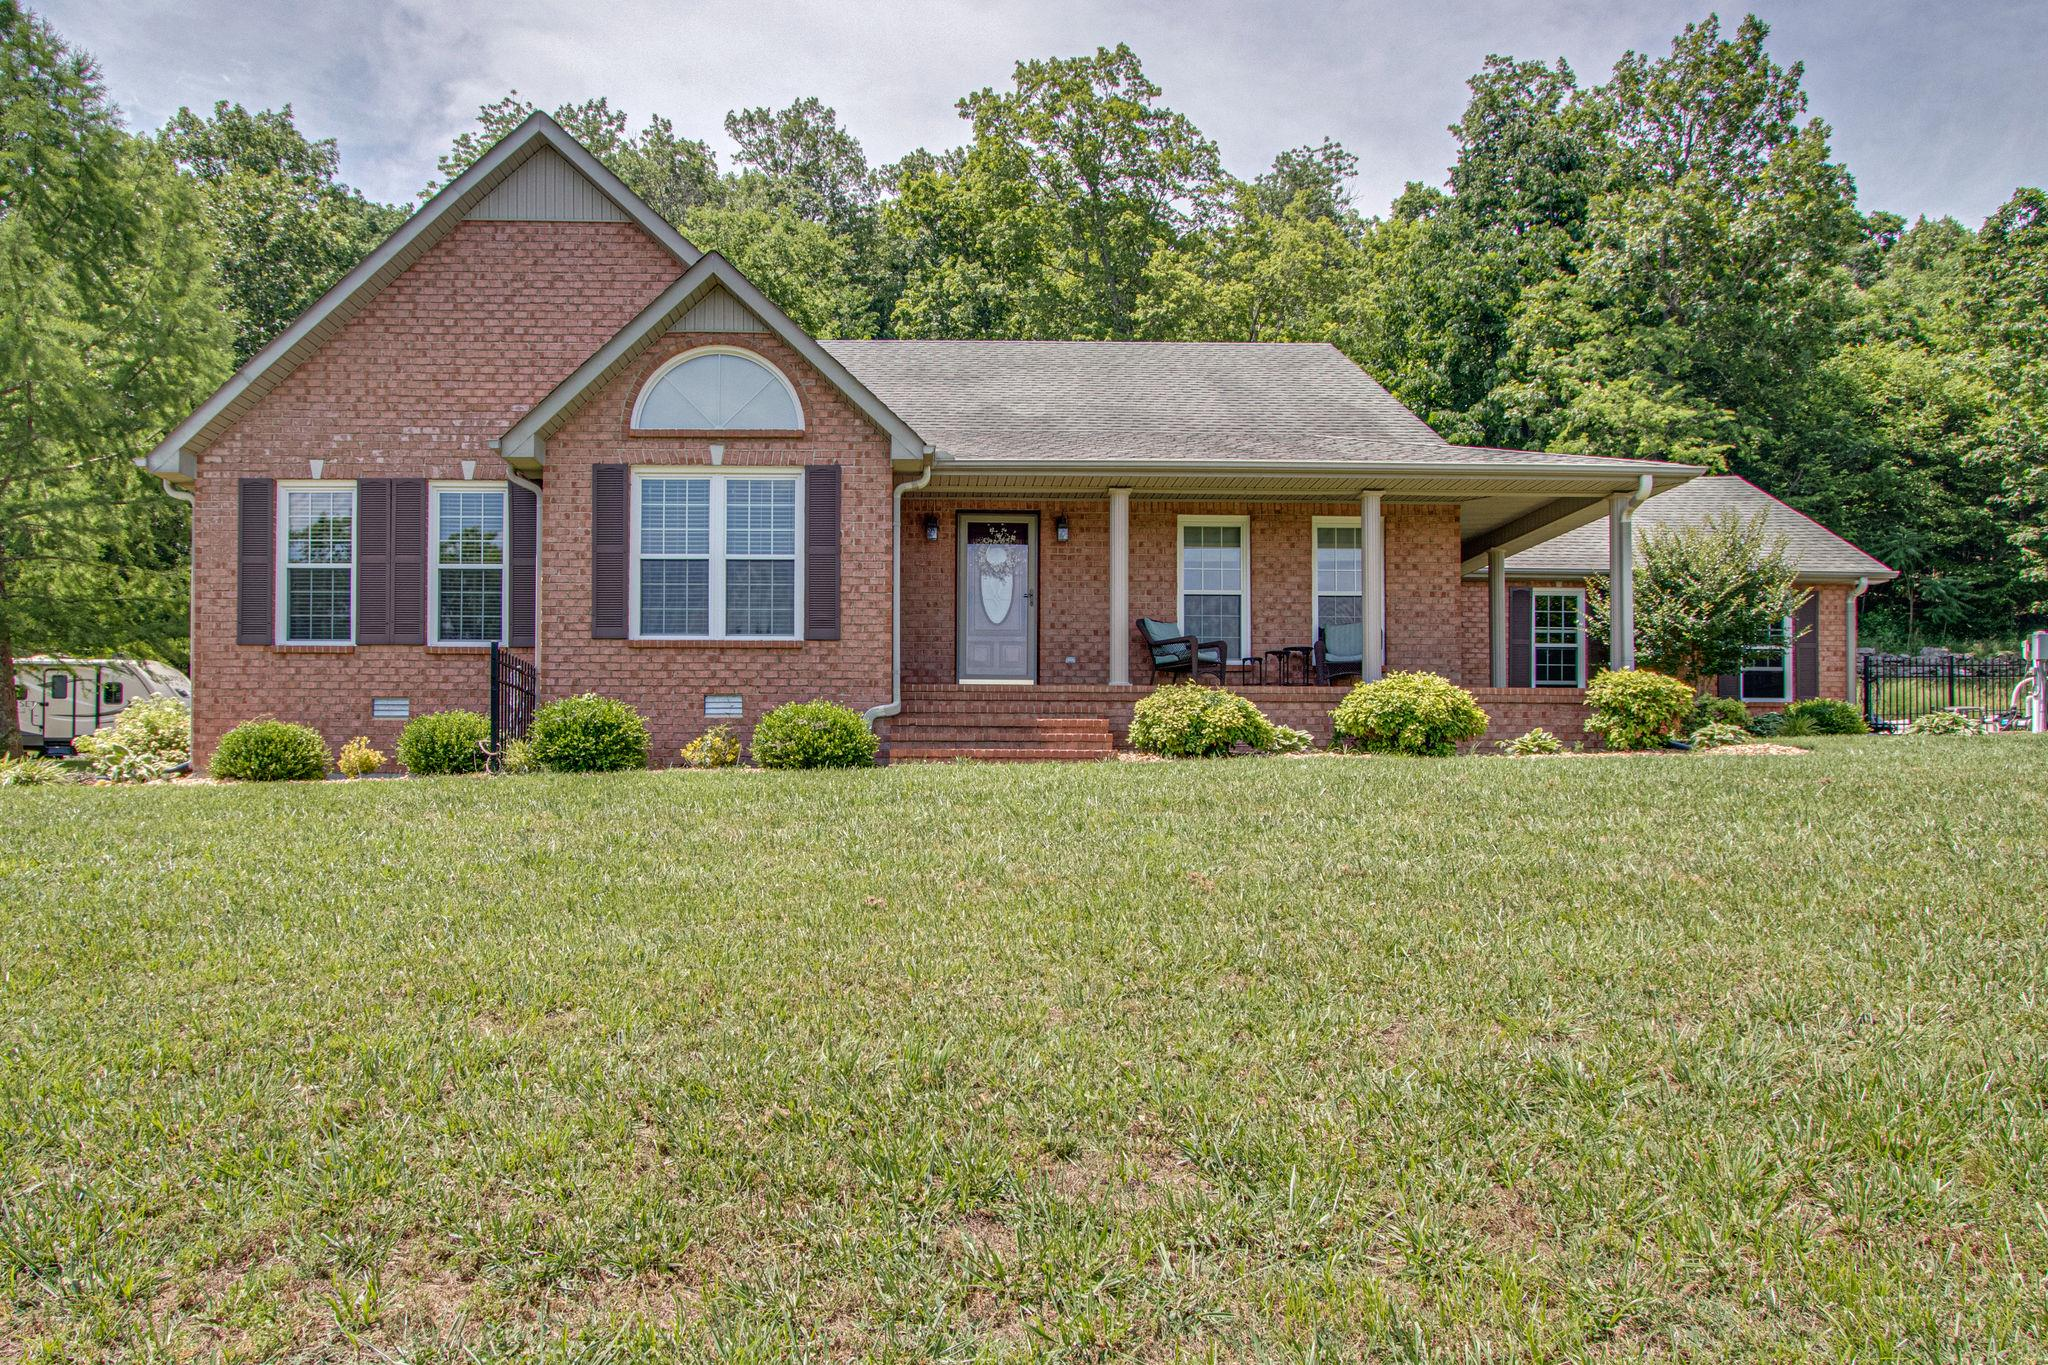 148 Sykes Rd, Brush Creek, TN 38547 - Brush Creek, TN real estate listing